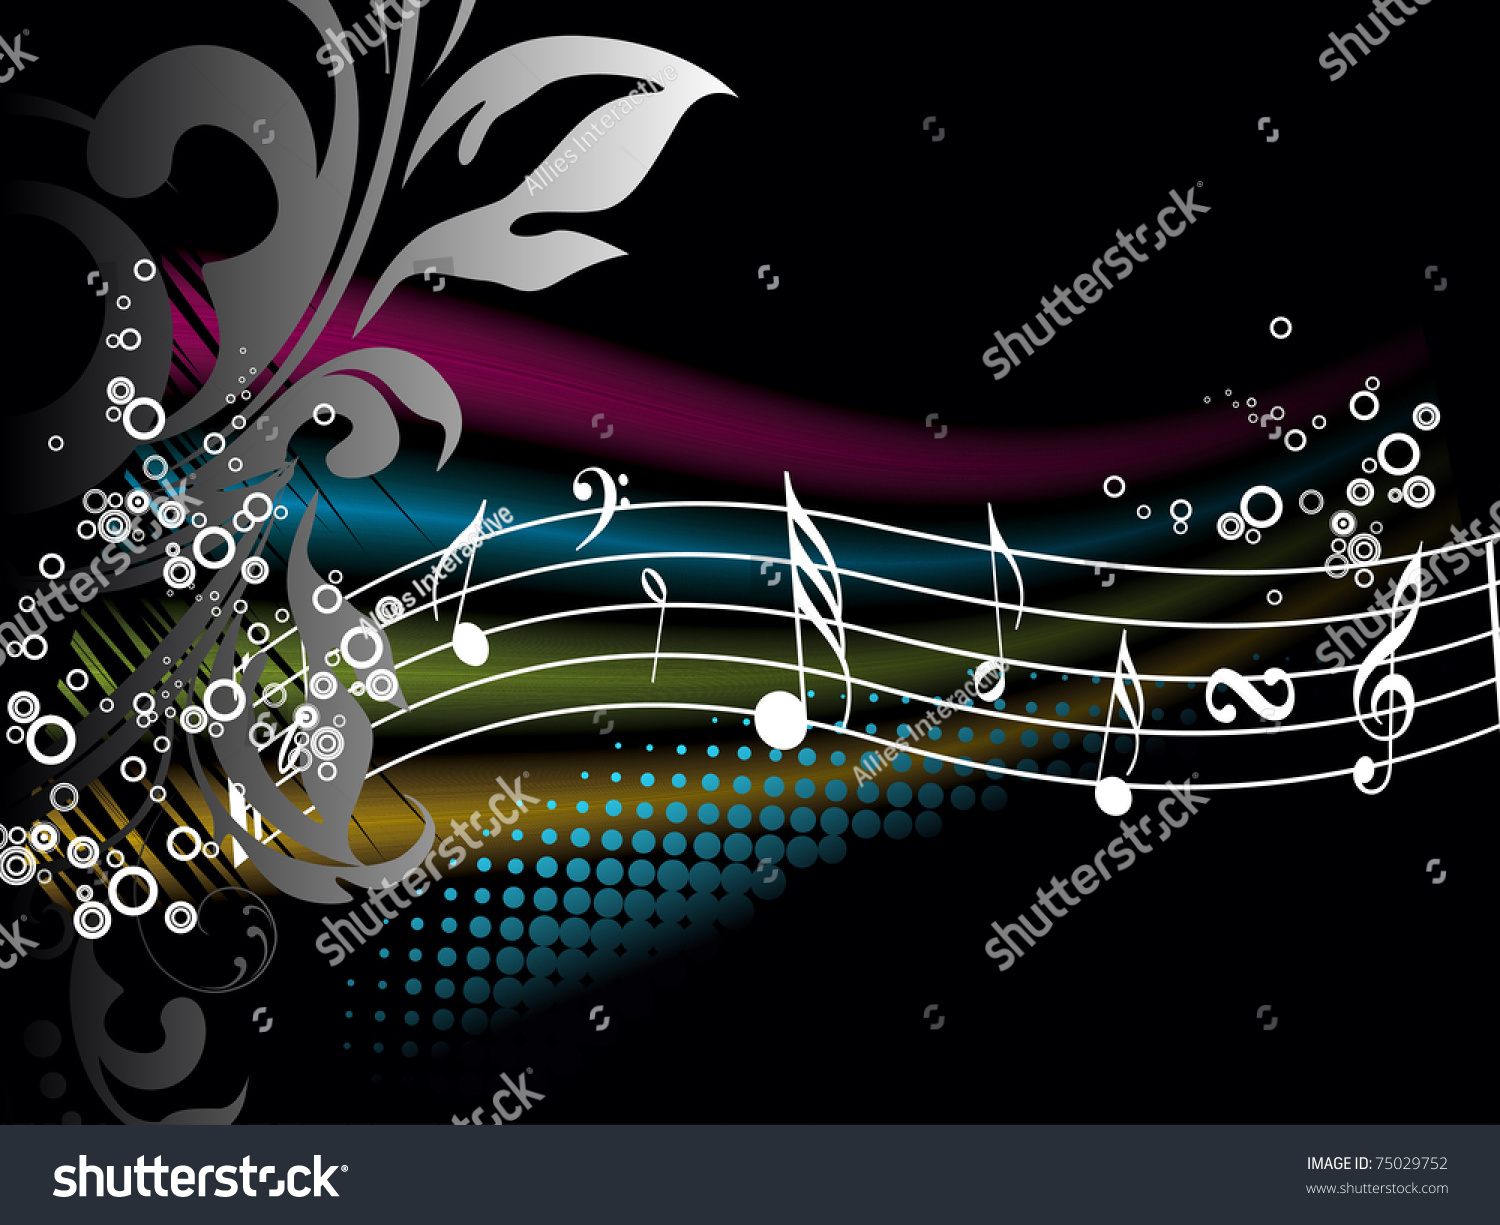 Abstract Music Notes Art: Abstract Floral Colorful Effect Background Musical Stock